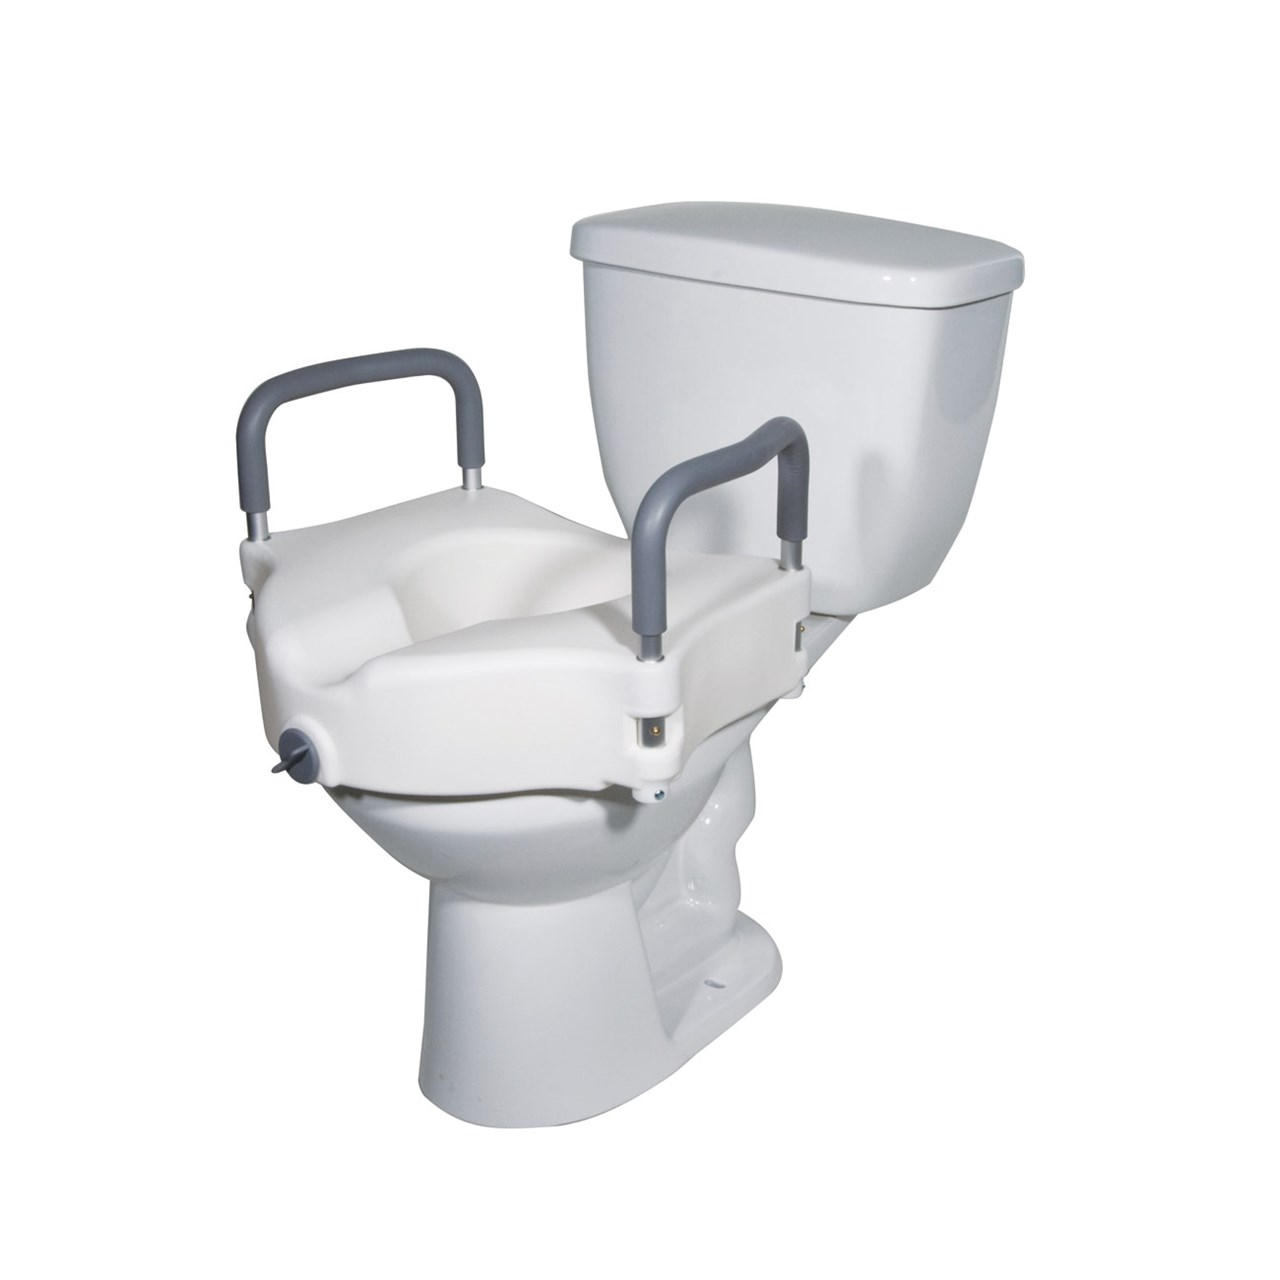 Maxiaids Elevated Toilet Seat With Removable Arms